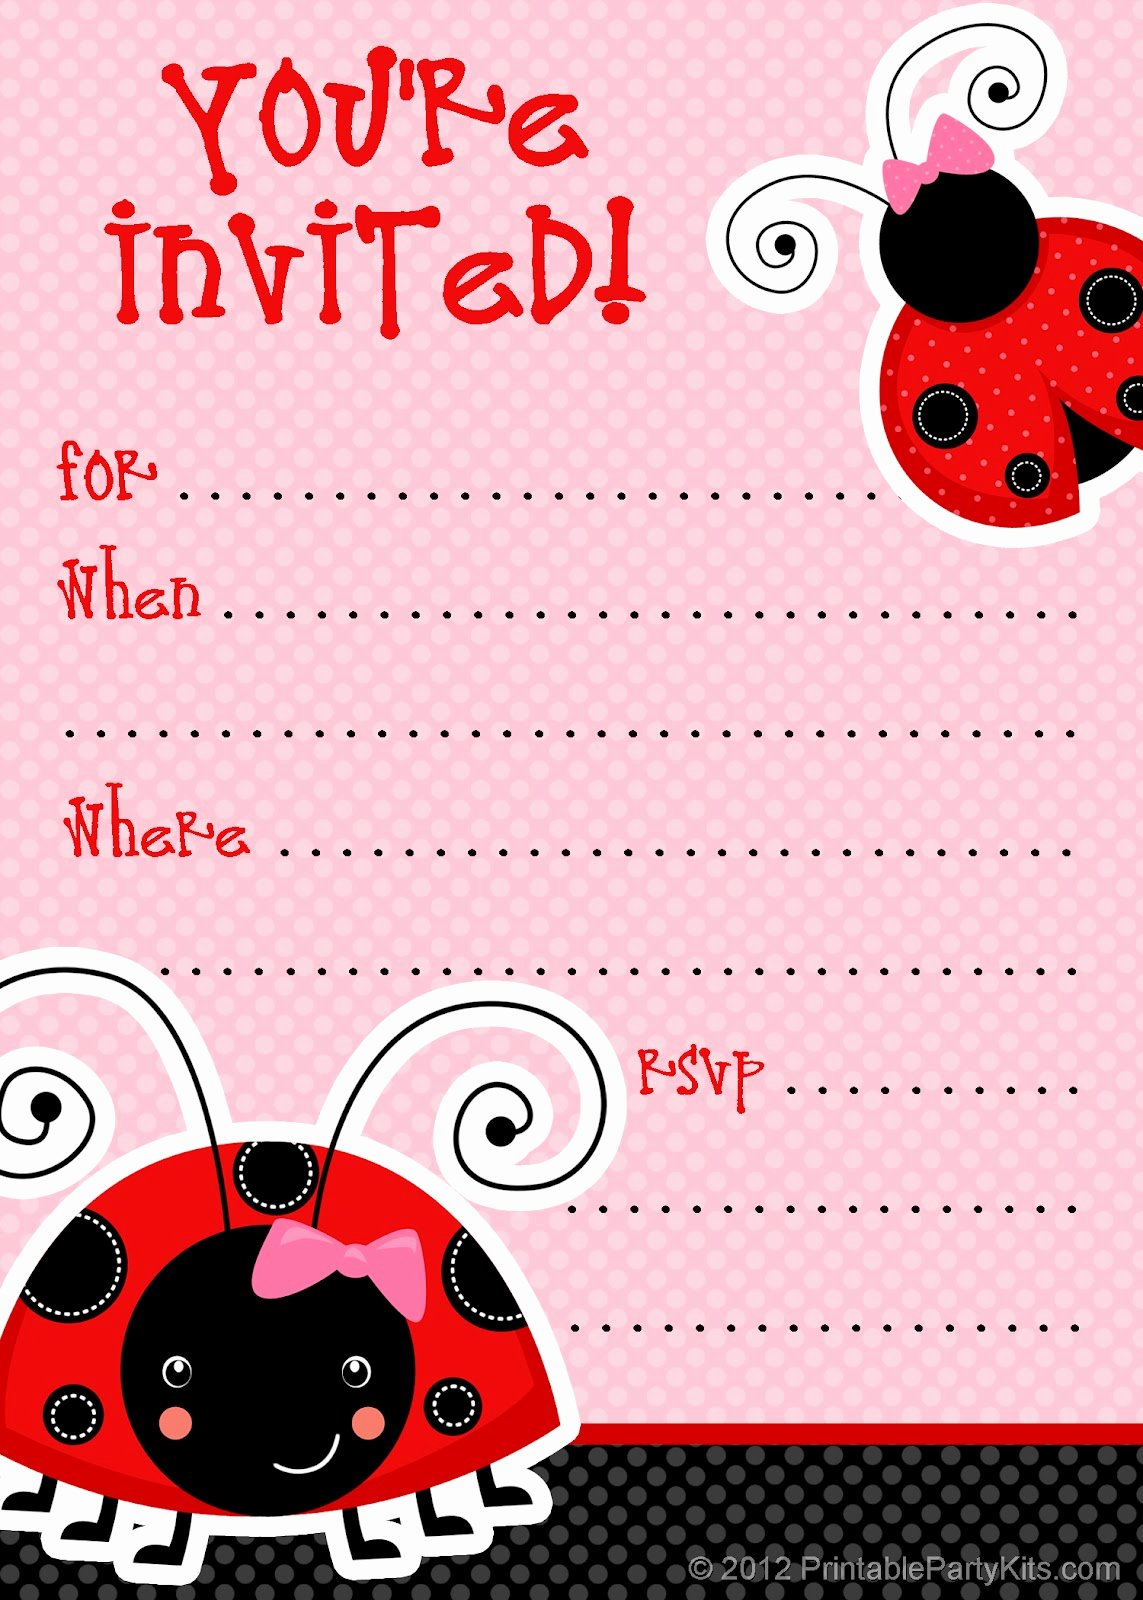 Party Invitation Template Free Elegant Free Printable Party Invitations Free Ladybug Invite Template